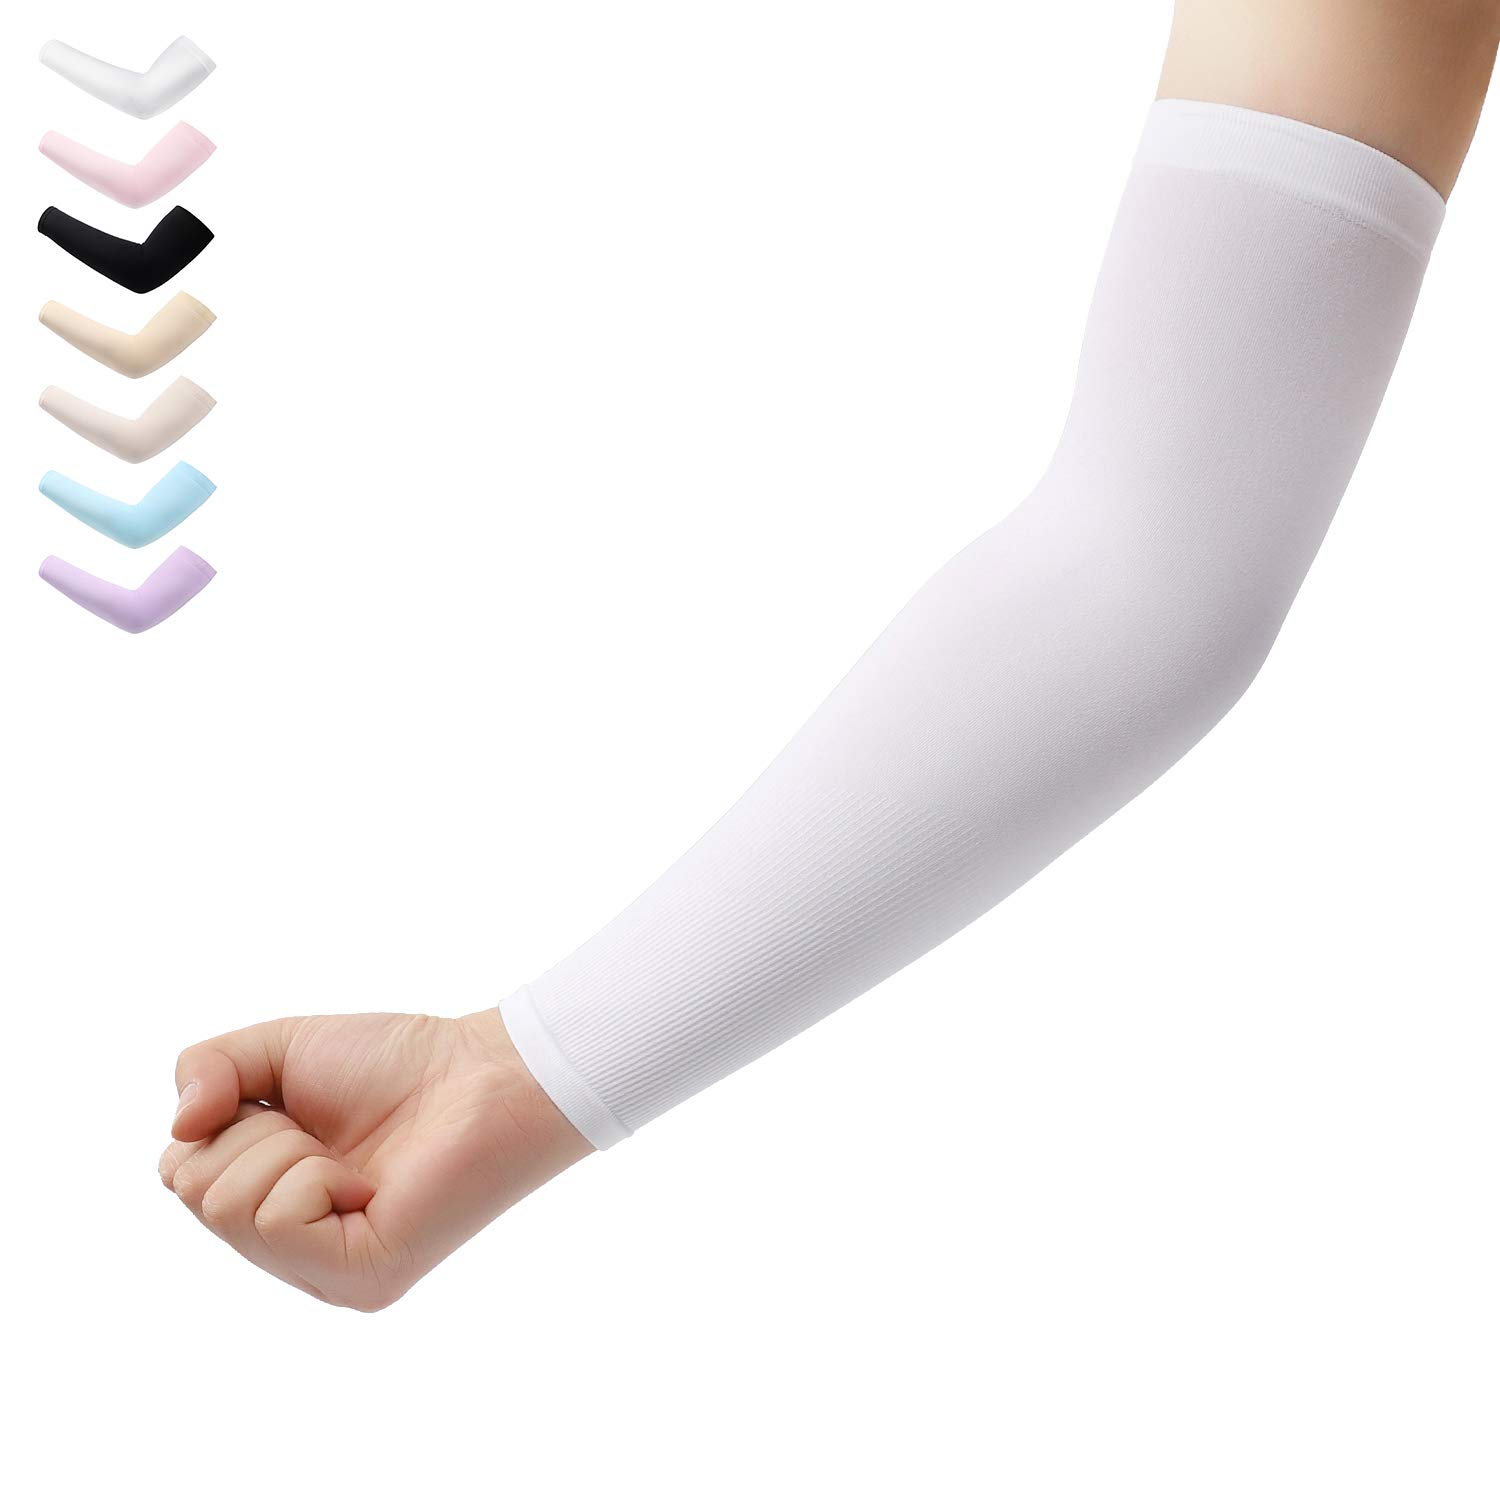 Arm Sleeves 1 Pair Cooling UV Protection, Compression Sleeves to Cover Arms Women Men, Sunblock Arm Cover Durable Stretchy for Outdoor Sports (White)